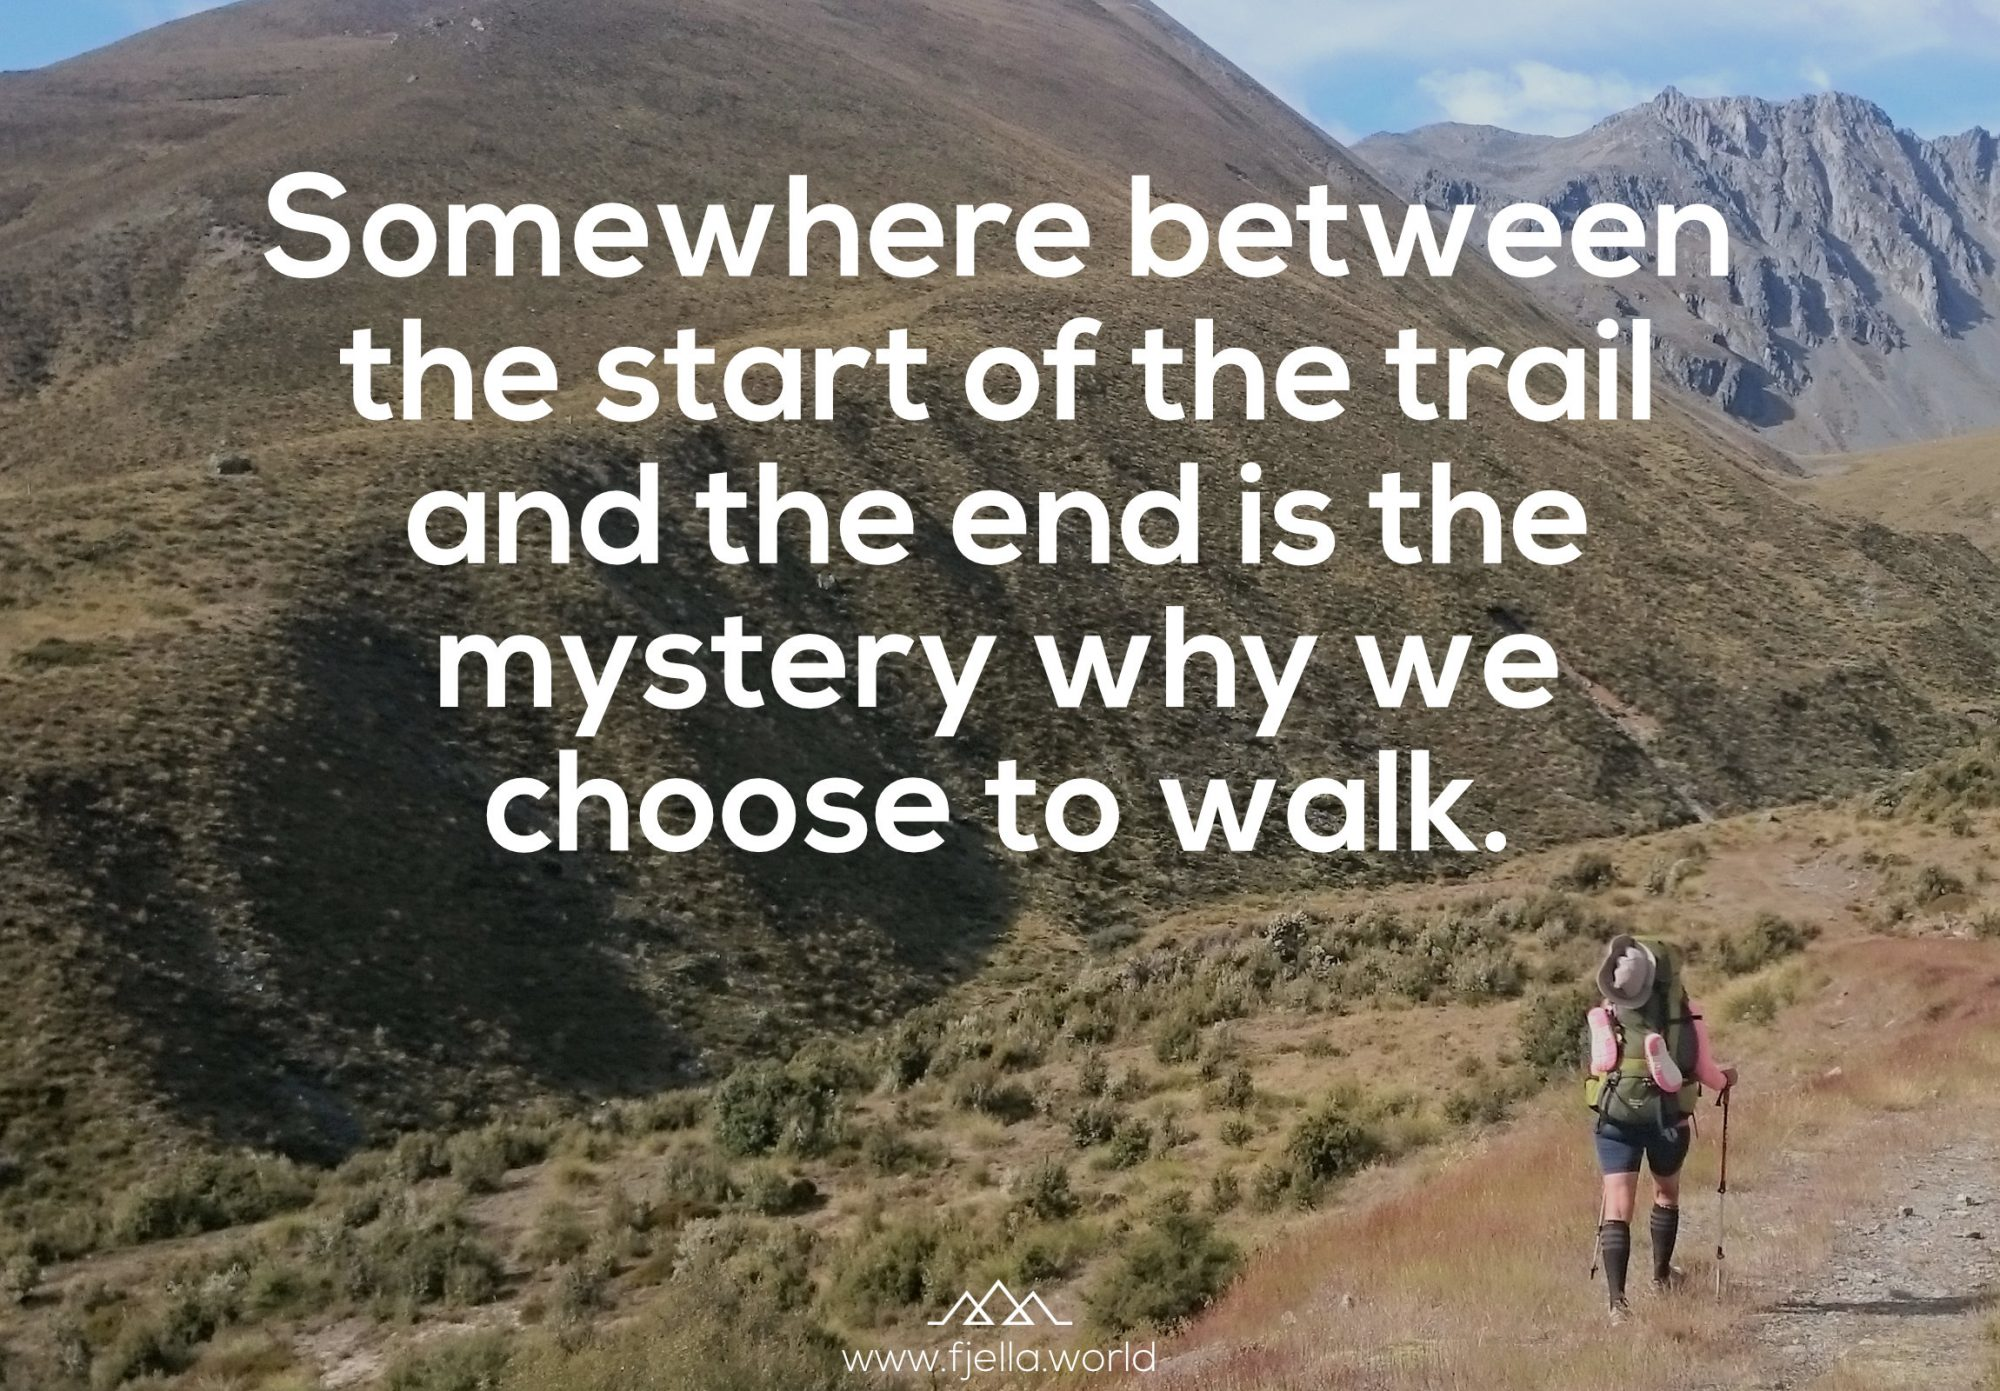 Somewhere between the start of the trail and the end is the mystery why we choose to walk. Unknown., Bergspruch, Wanderzitat, Inspiration, Motivation, Zitat, Spruch, Reisezitate, Motivation